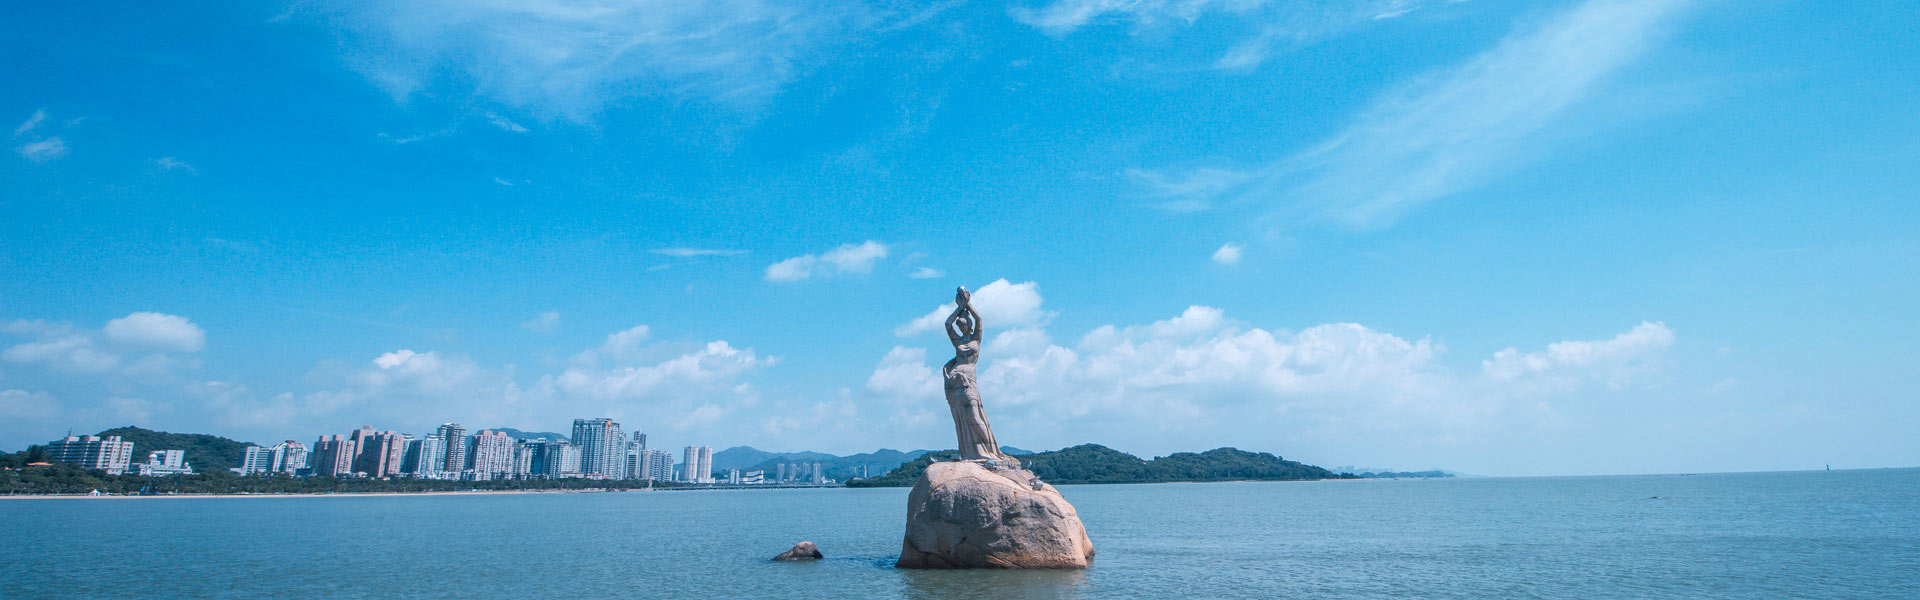 Zhuhai Travel